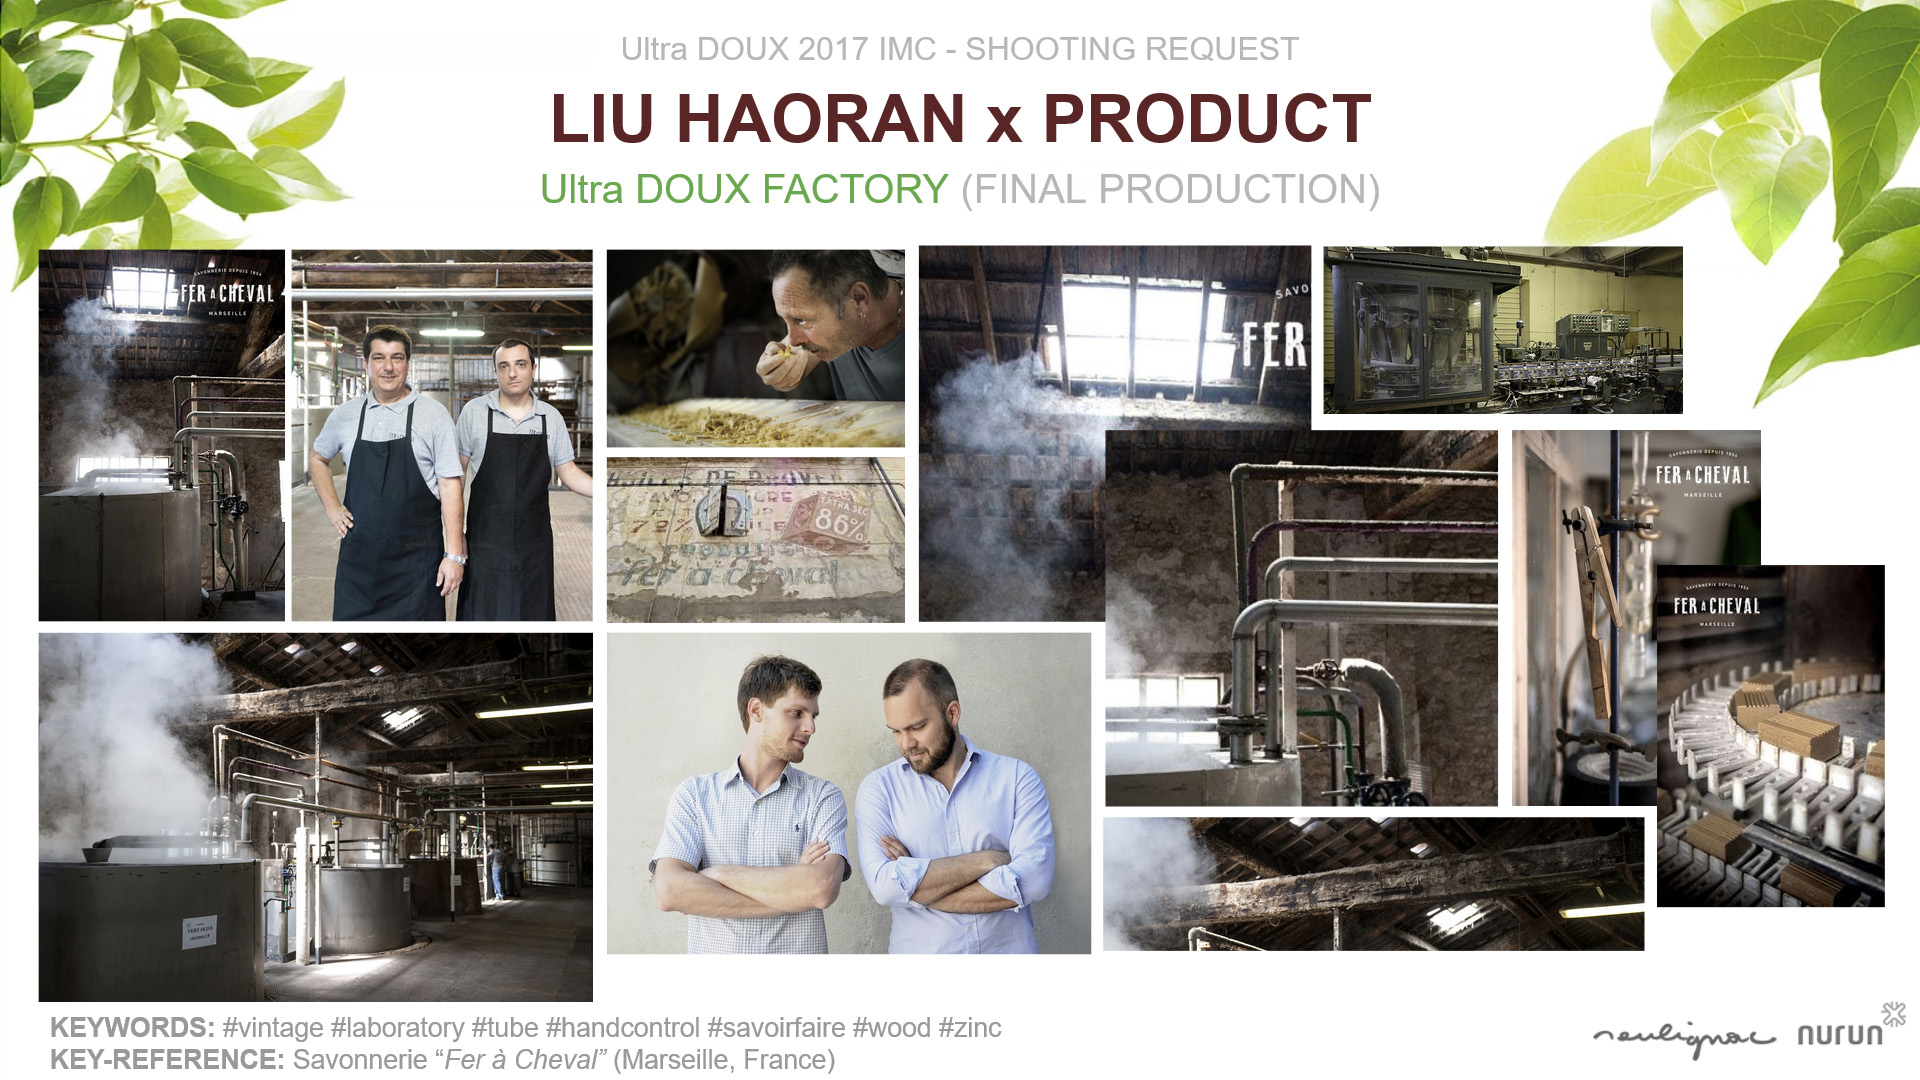 L'Oréal China - Garnier Ultra DOUX - Liu Haoran in France - PRODUCT x FACTORY Final production - Francois Soulignac - Nurun Publicis Shanghai